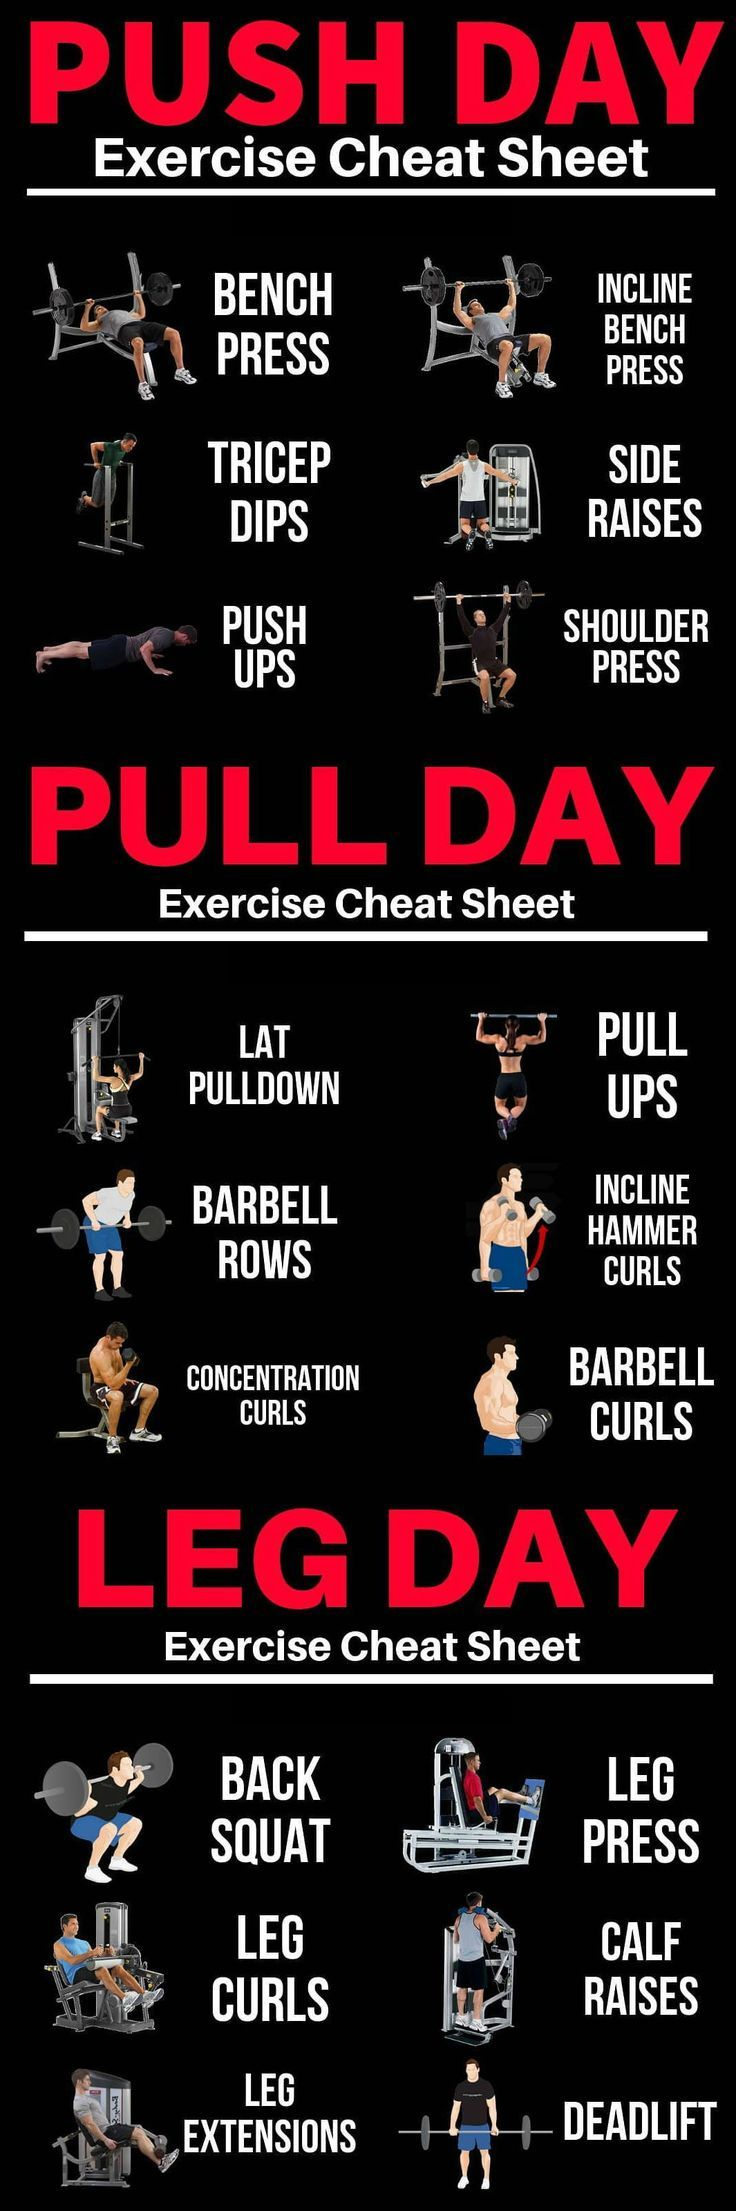 Push/Pull/Legs Weight Training Workout Schedule For 7 Days - GymGuider.com